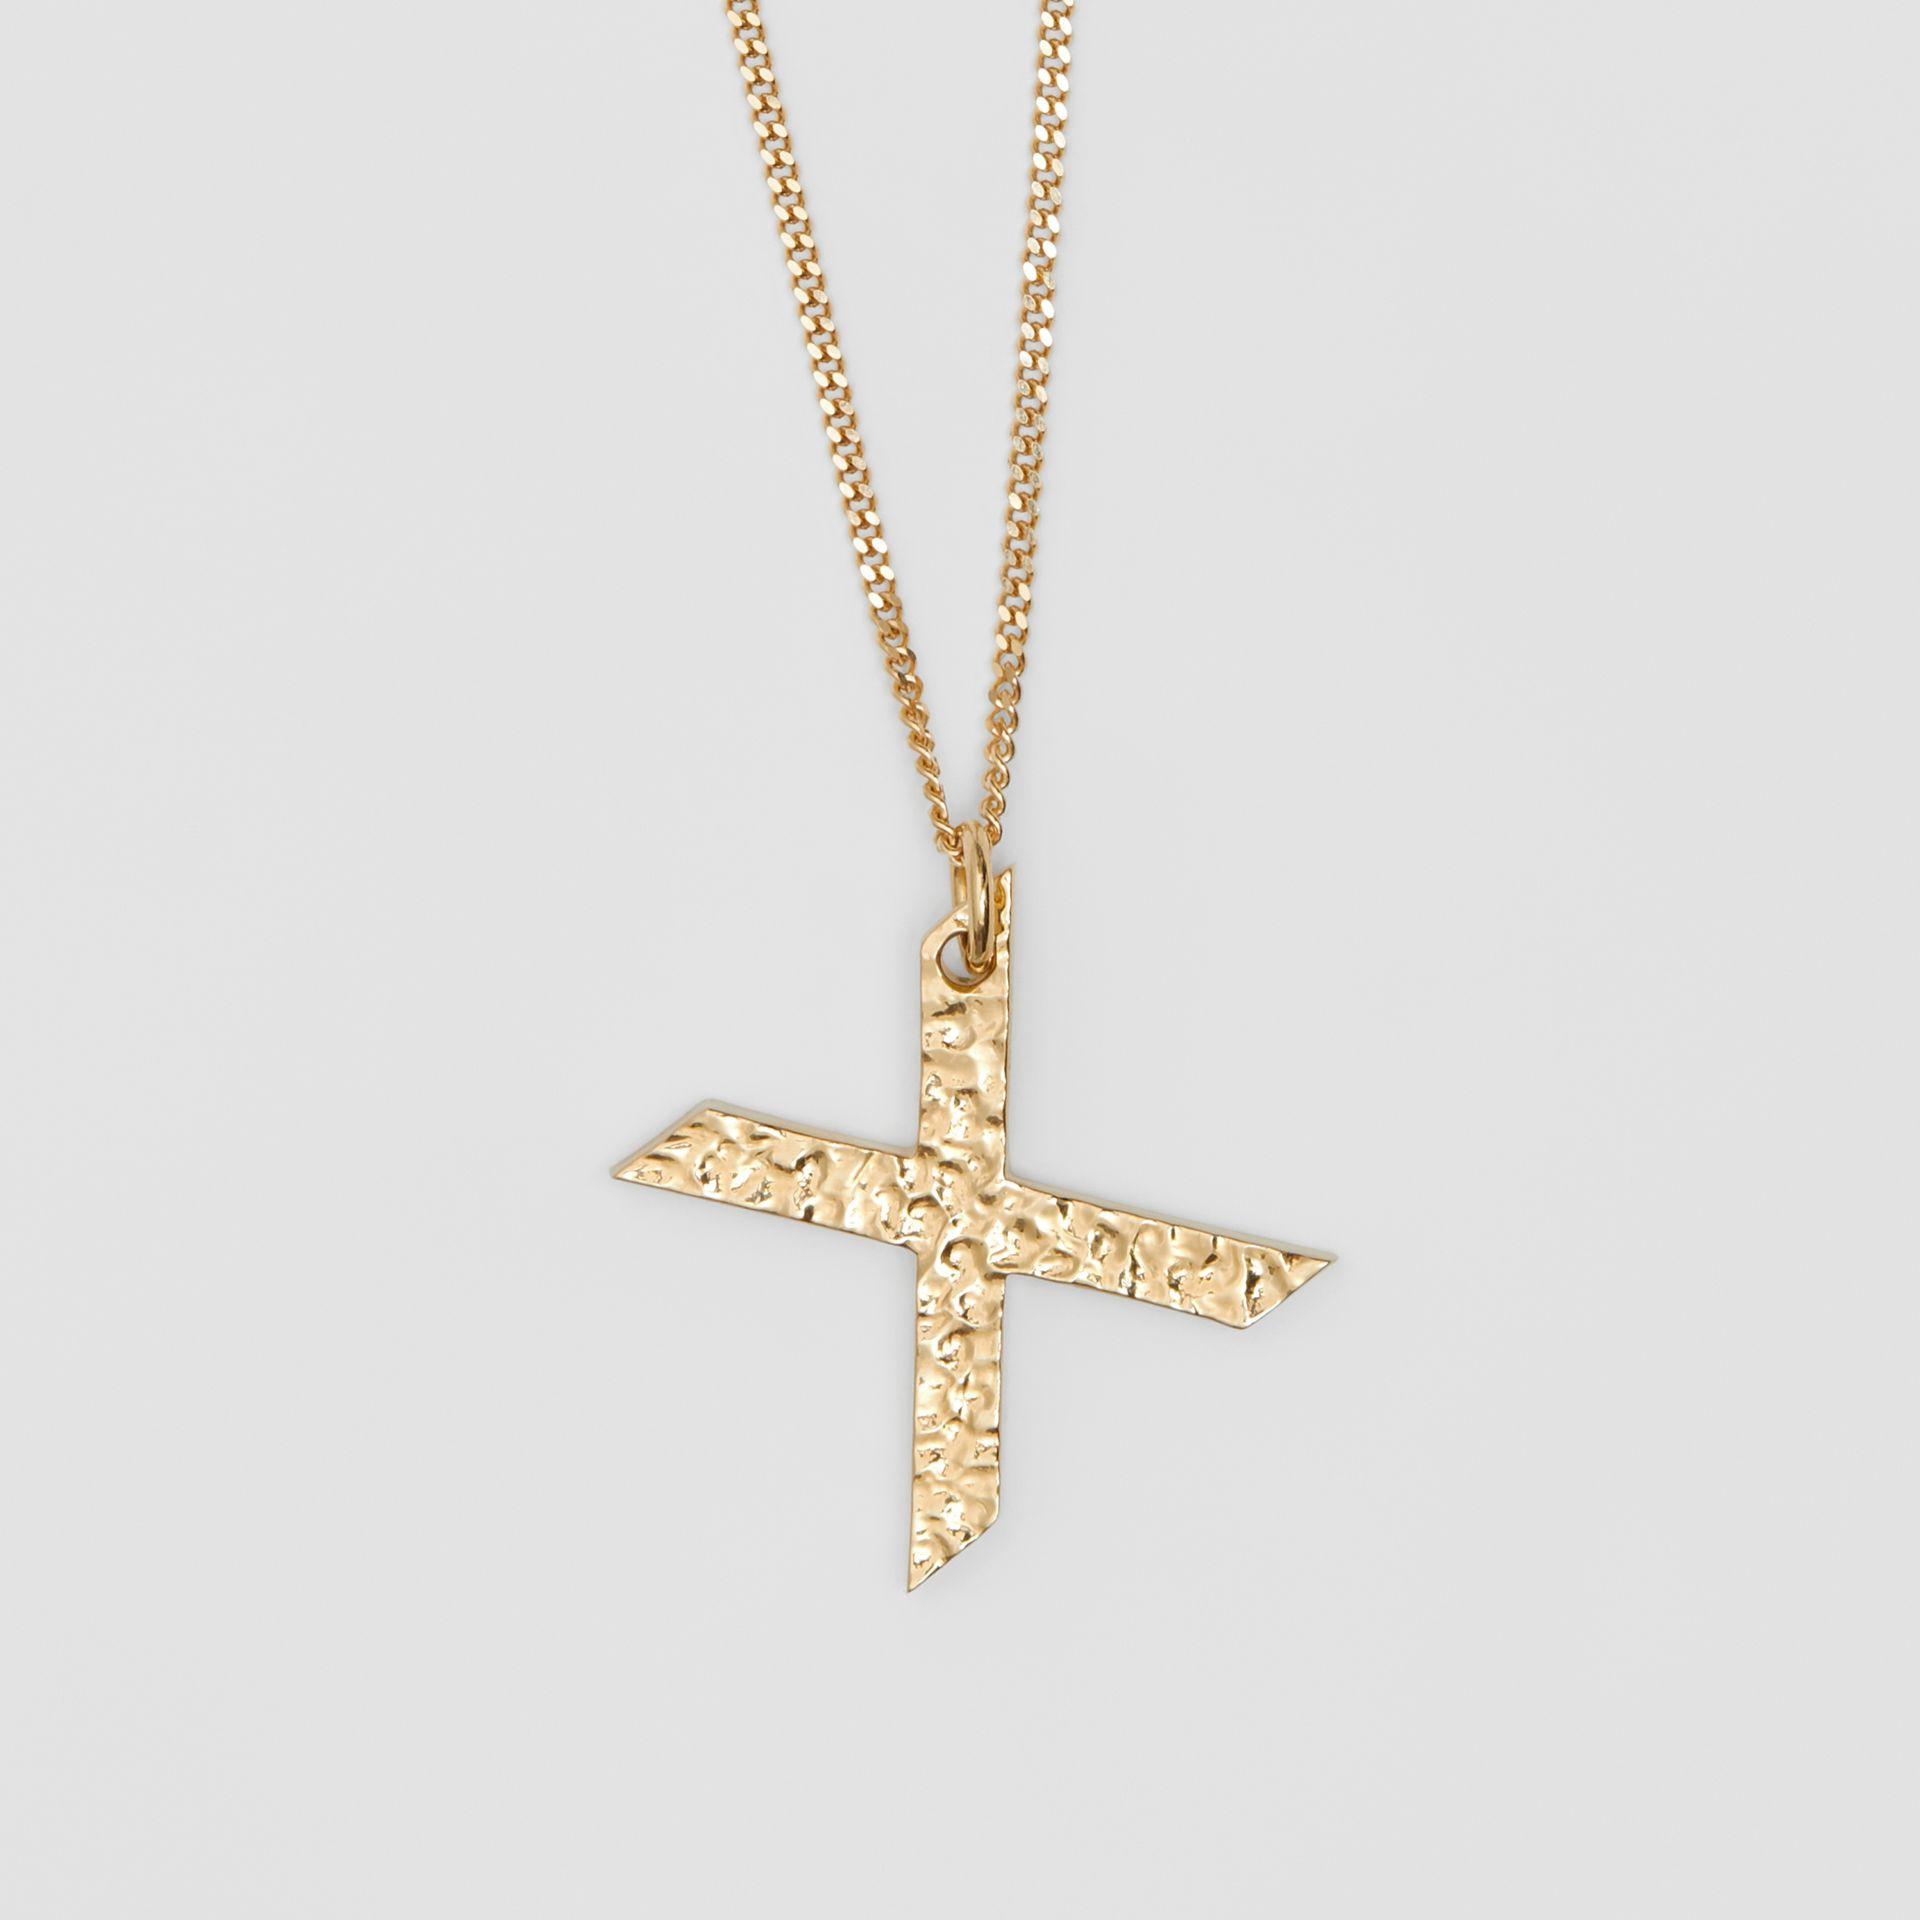 'X' Alphabet Charm Gold-plated Necklace in Light - Women | Burberry United Kingdom - gallery image 2